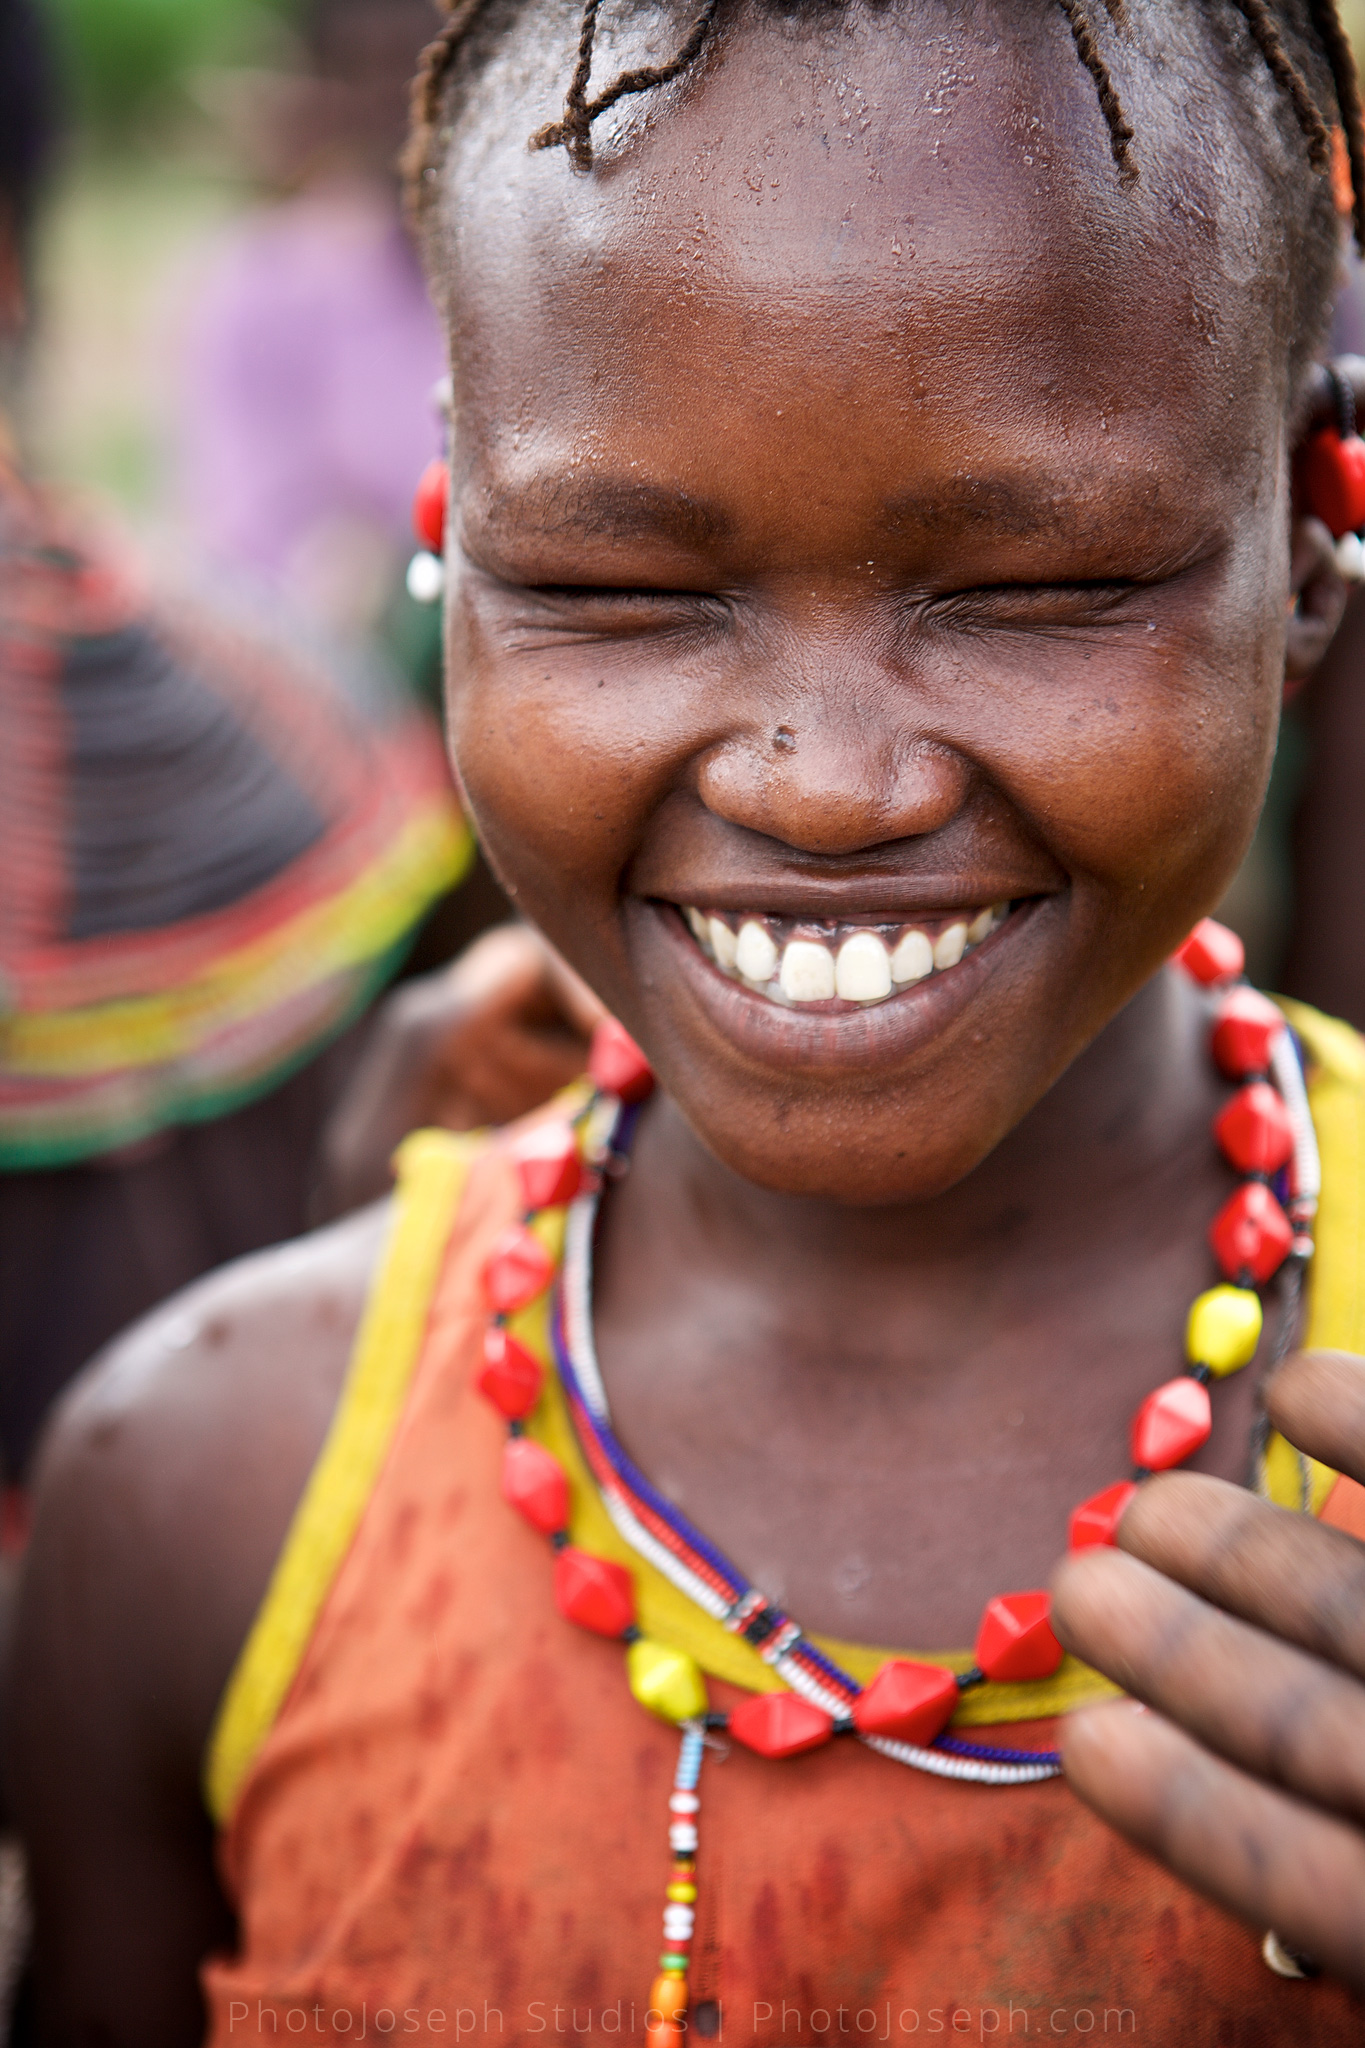 Laughter of the Pokot